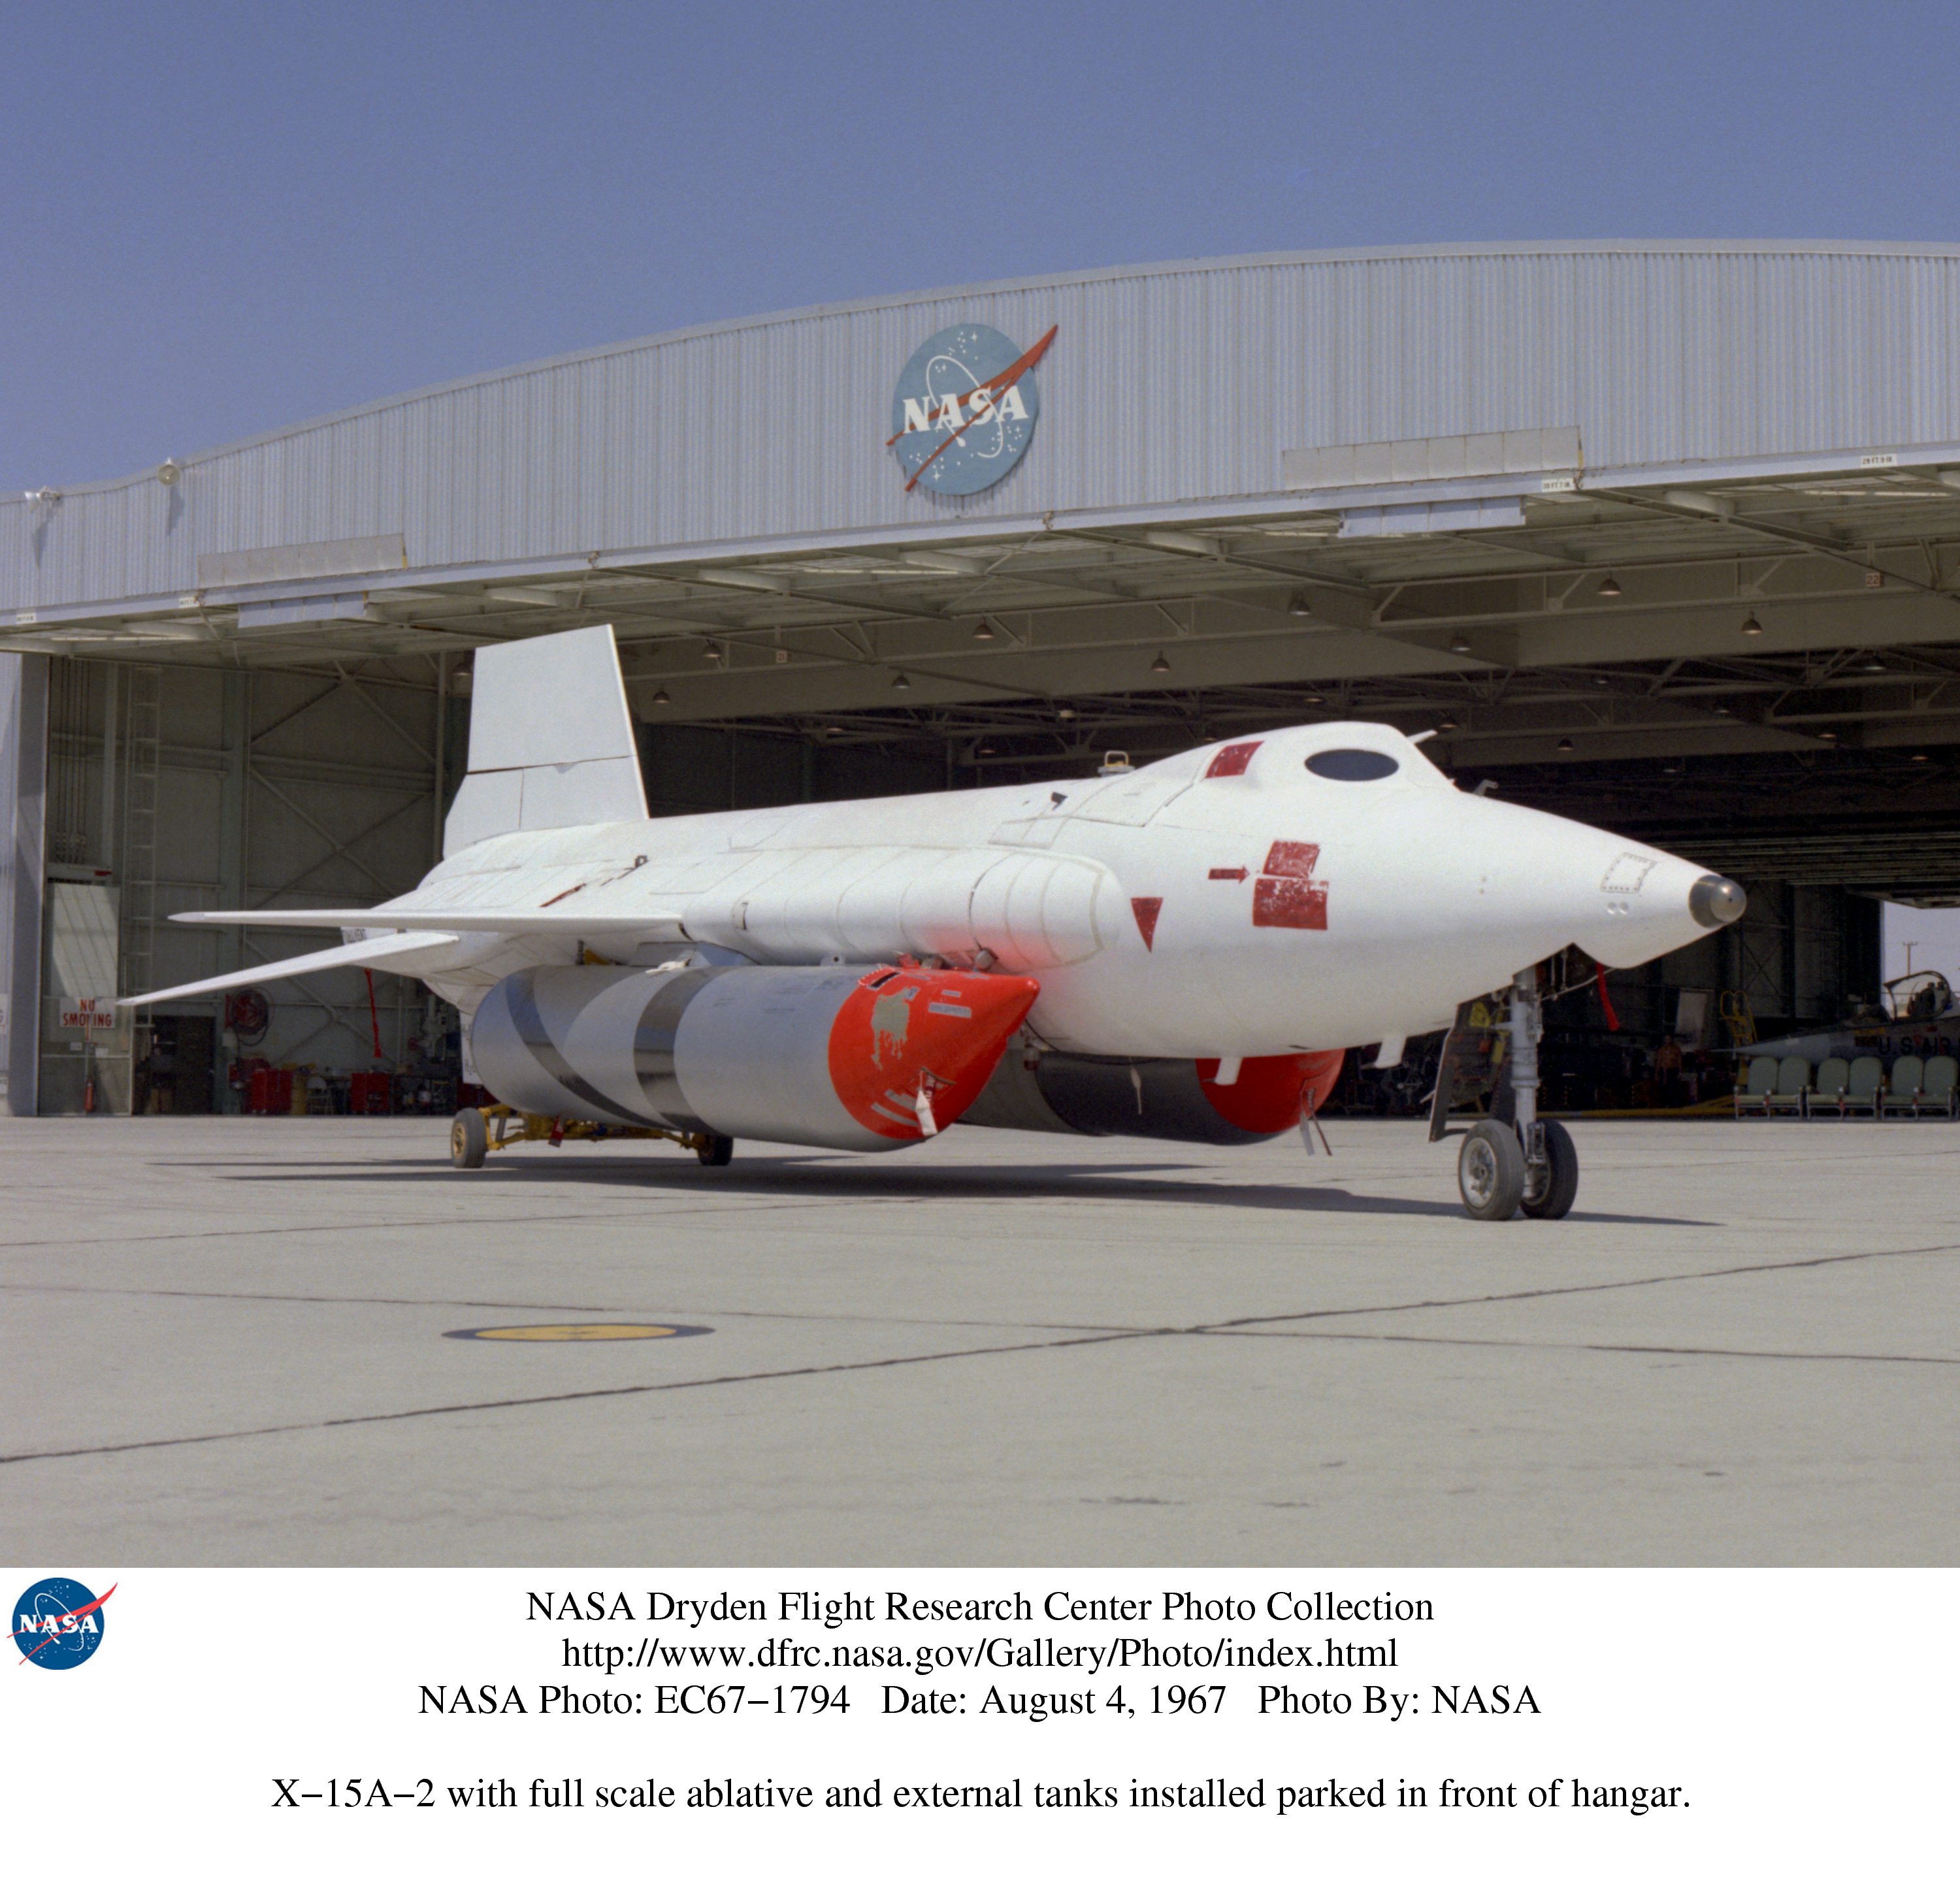 NASA Dryden X-15 Photo Collection